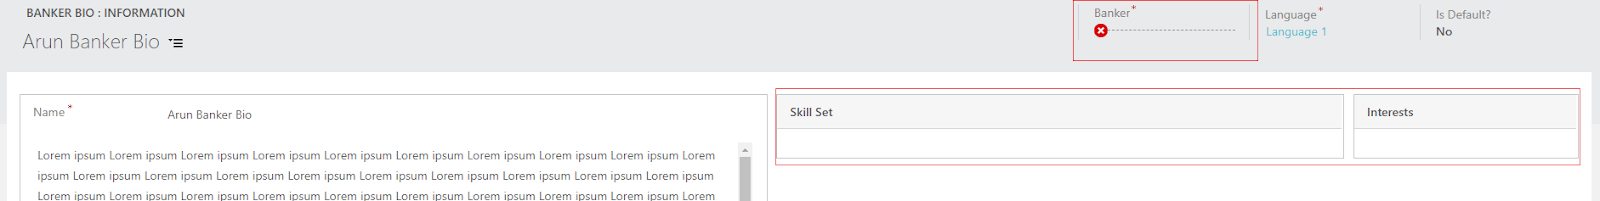 Embedding subgrid in related entity using Quick view form